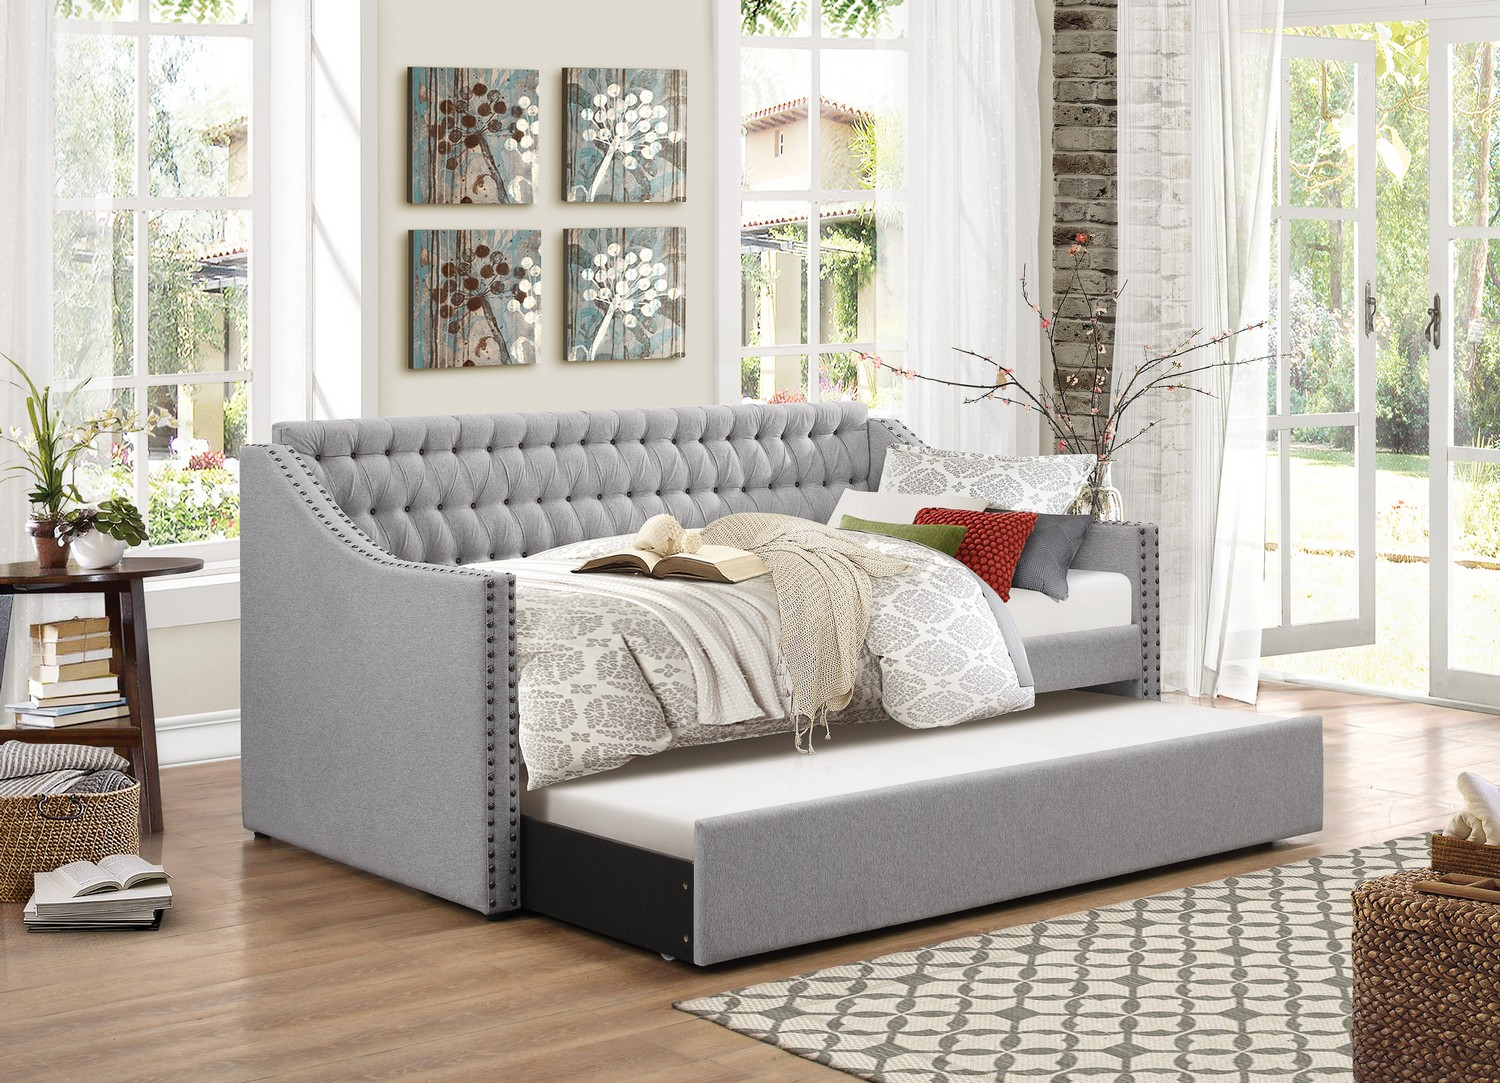 Homelegance Tulney Daybed with Trundle - Grey